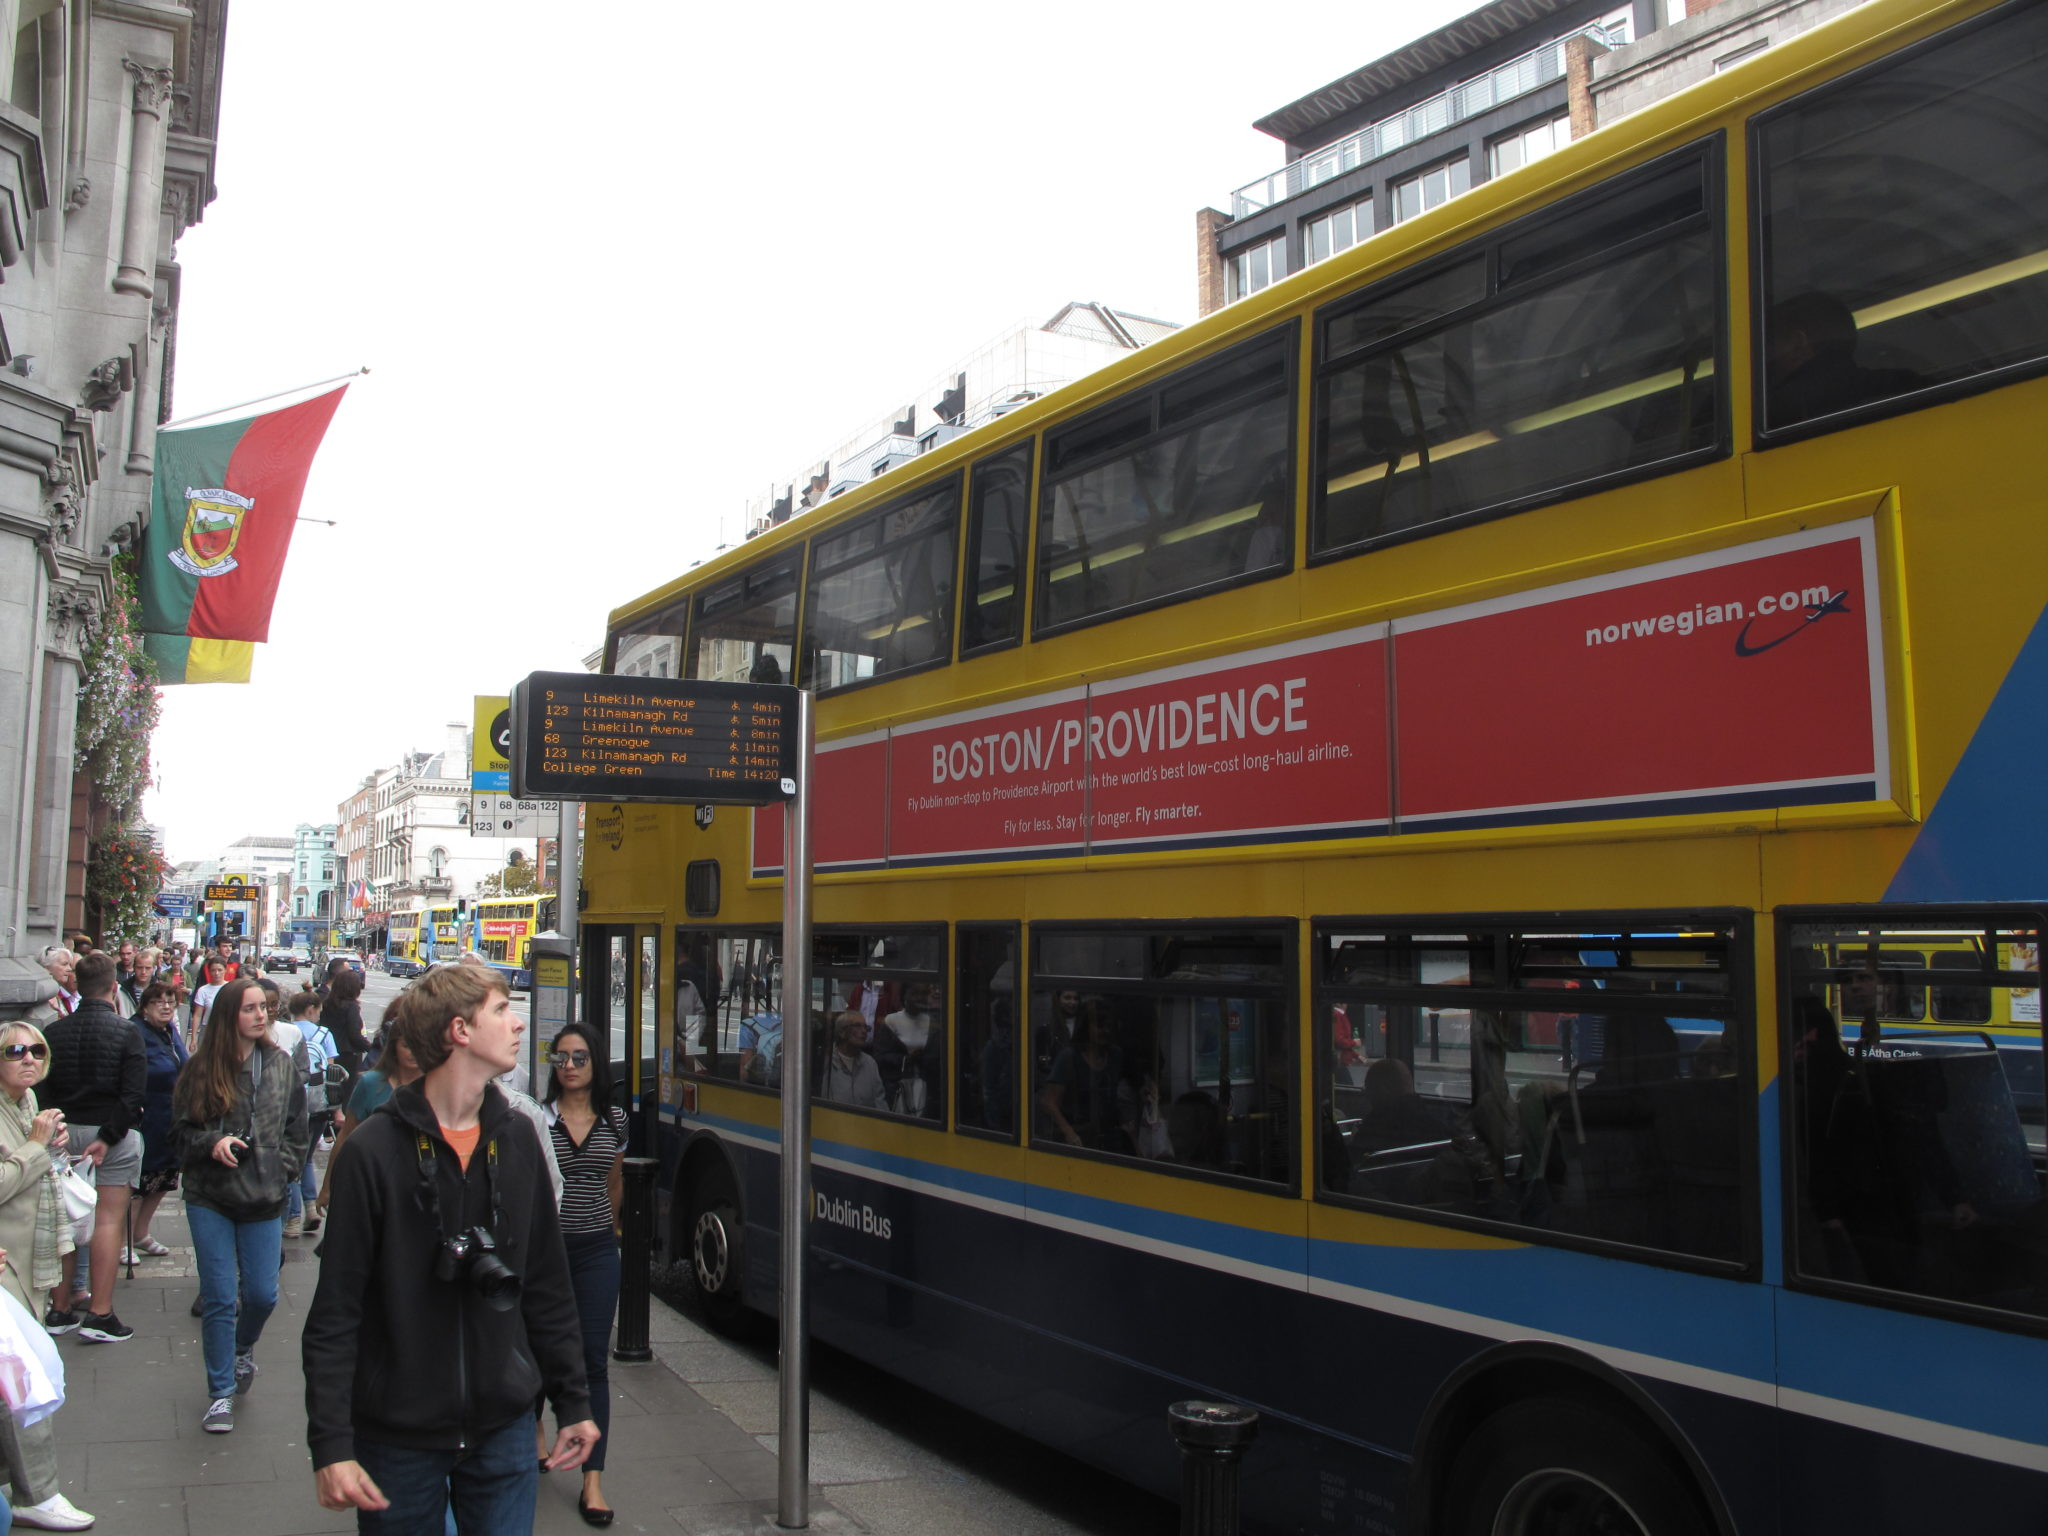 NORWEGIAN AIRLINES, which is running ads on public transit buses in Dublin, Ireland, would be eligible for reimbursement for the campaign under the Air Service Development Fund program. / PBN PHOTO/MARK S. MURPHY